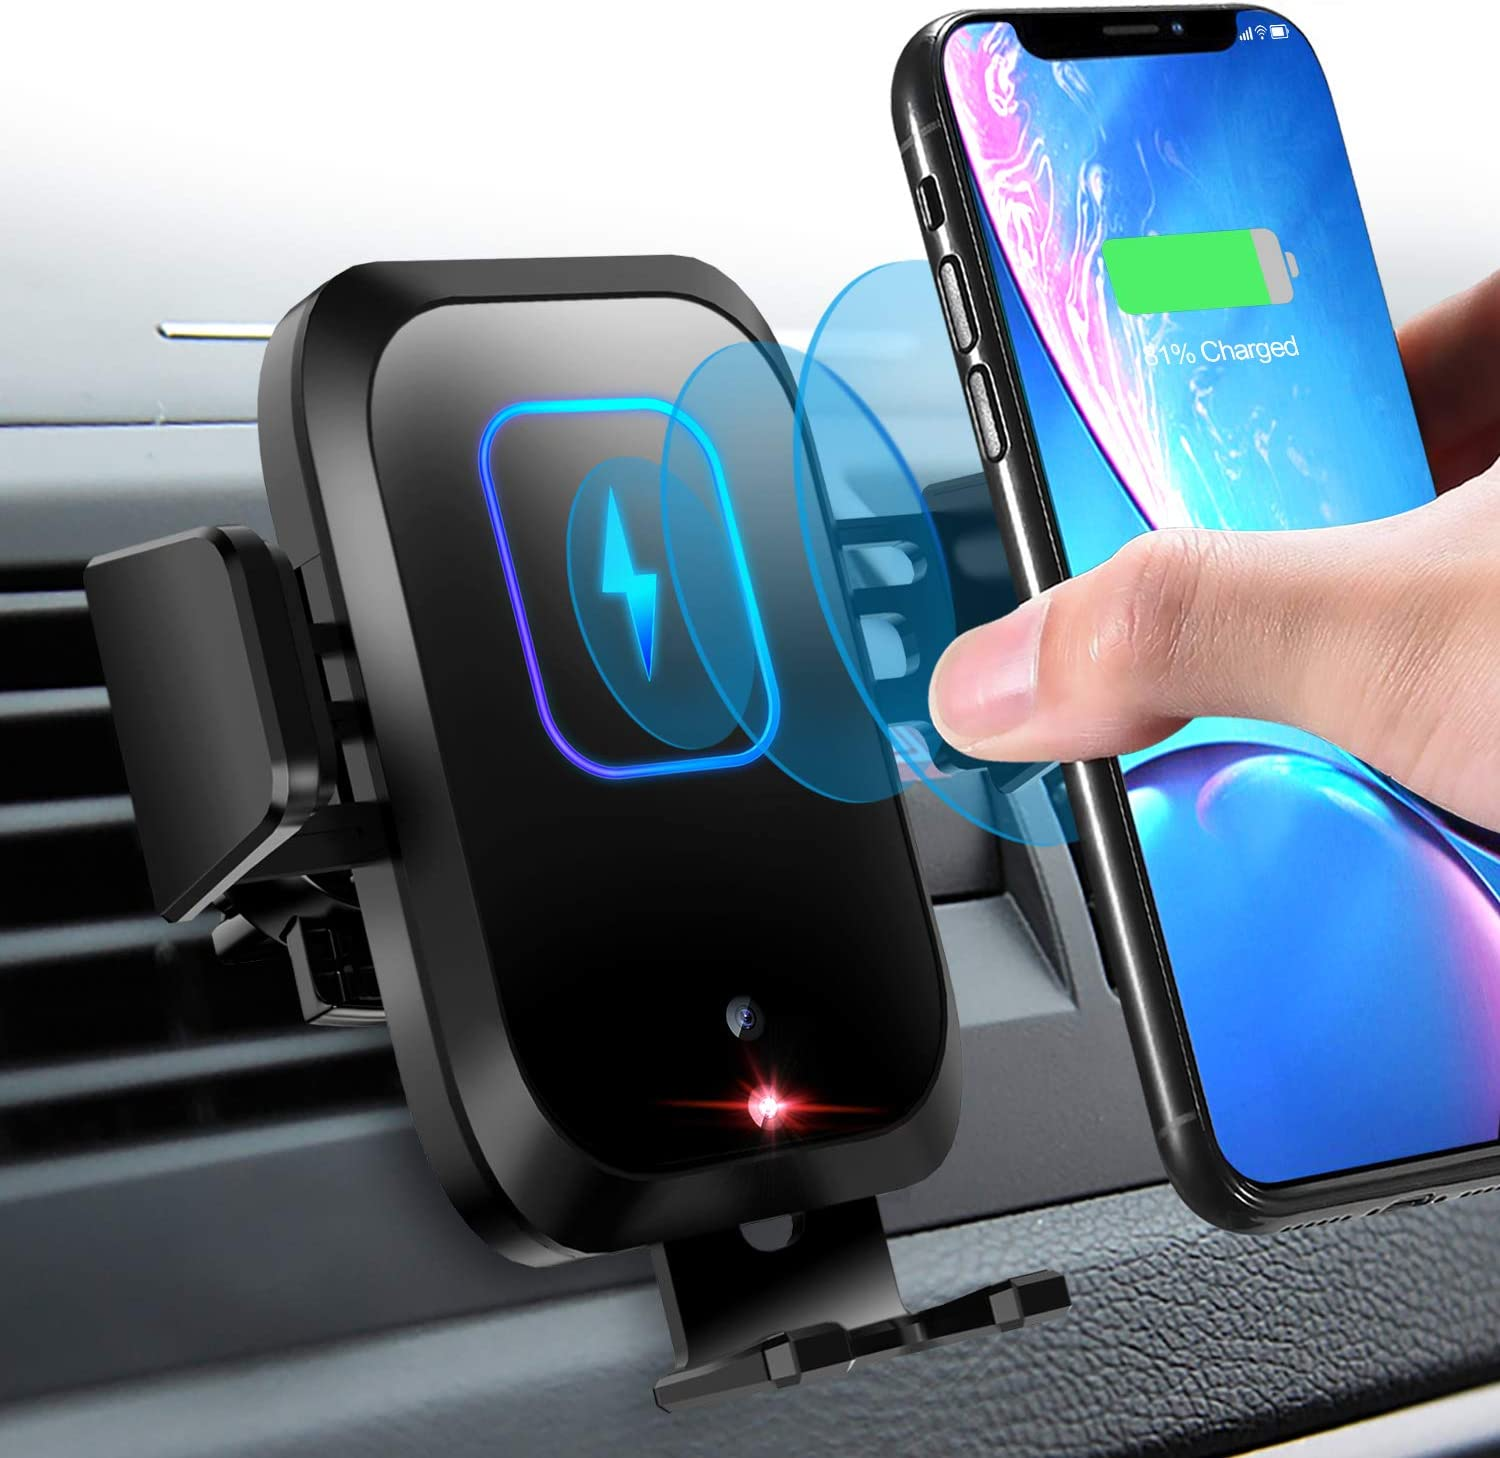 Samsung S10//S10+//S9//S9+//S8 /& More Wireless Car Charger Mount 10W//7.5W Qi Fast Charging Sensor Auto-Clamping Air Vent Car Phone Holder Compatible iPhone 11//11 Pro//11 Pro Max//XS//XR//X//8//8+ Note 10//10